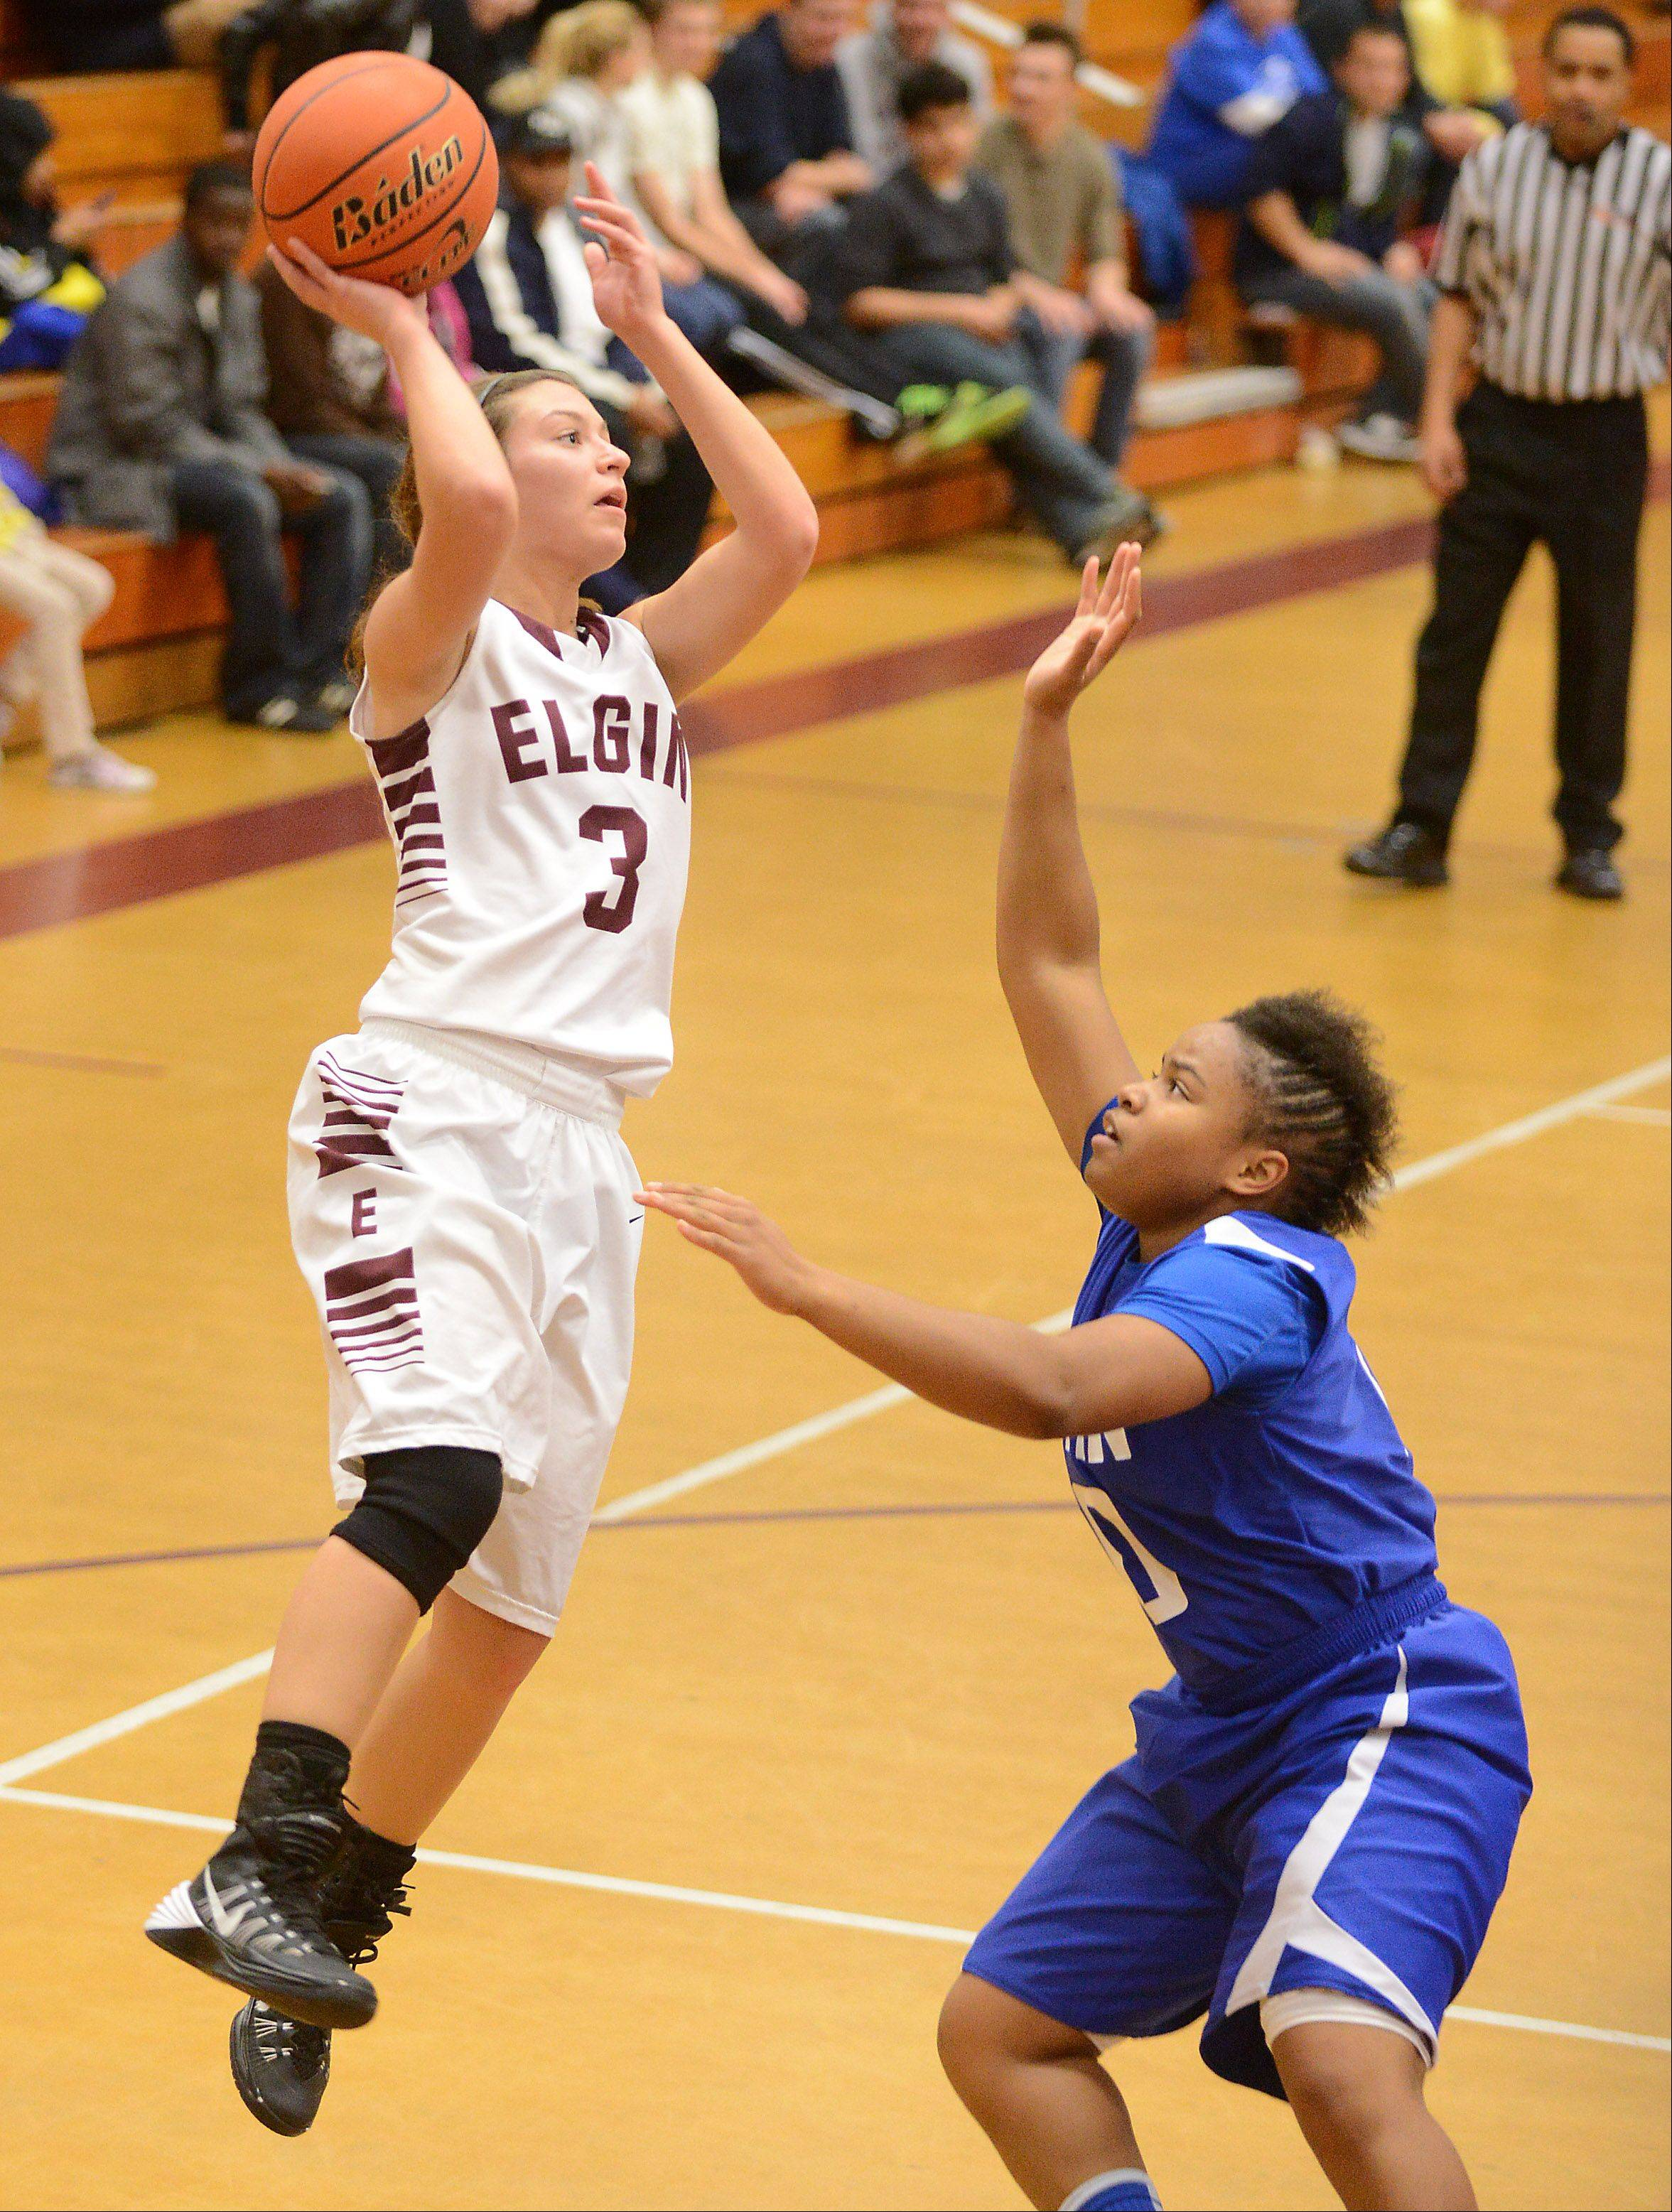 Elgin's Maggie Powers shoots over Larkin's Quixmia Washington.